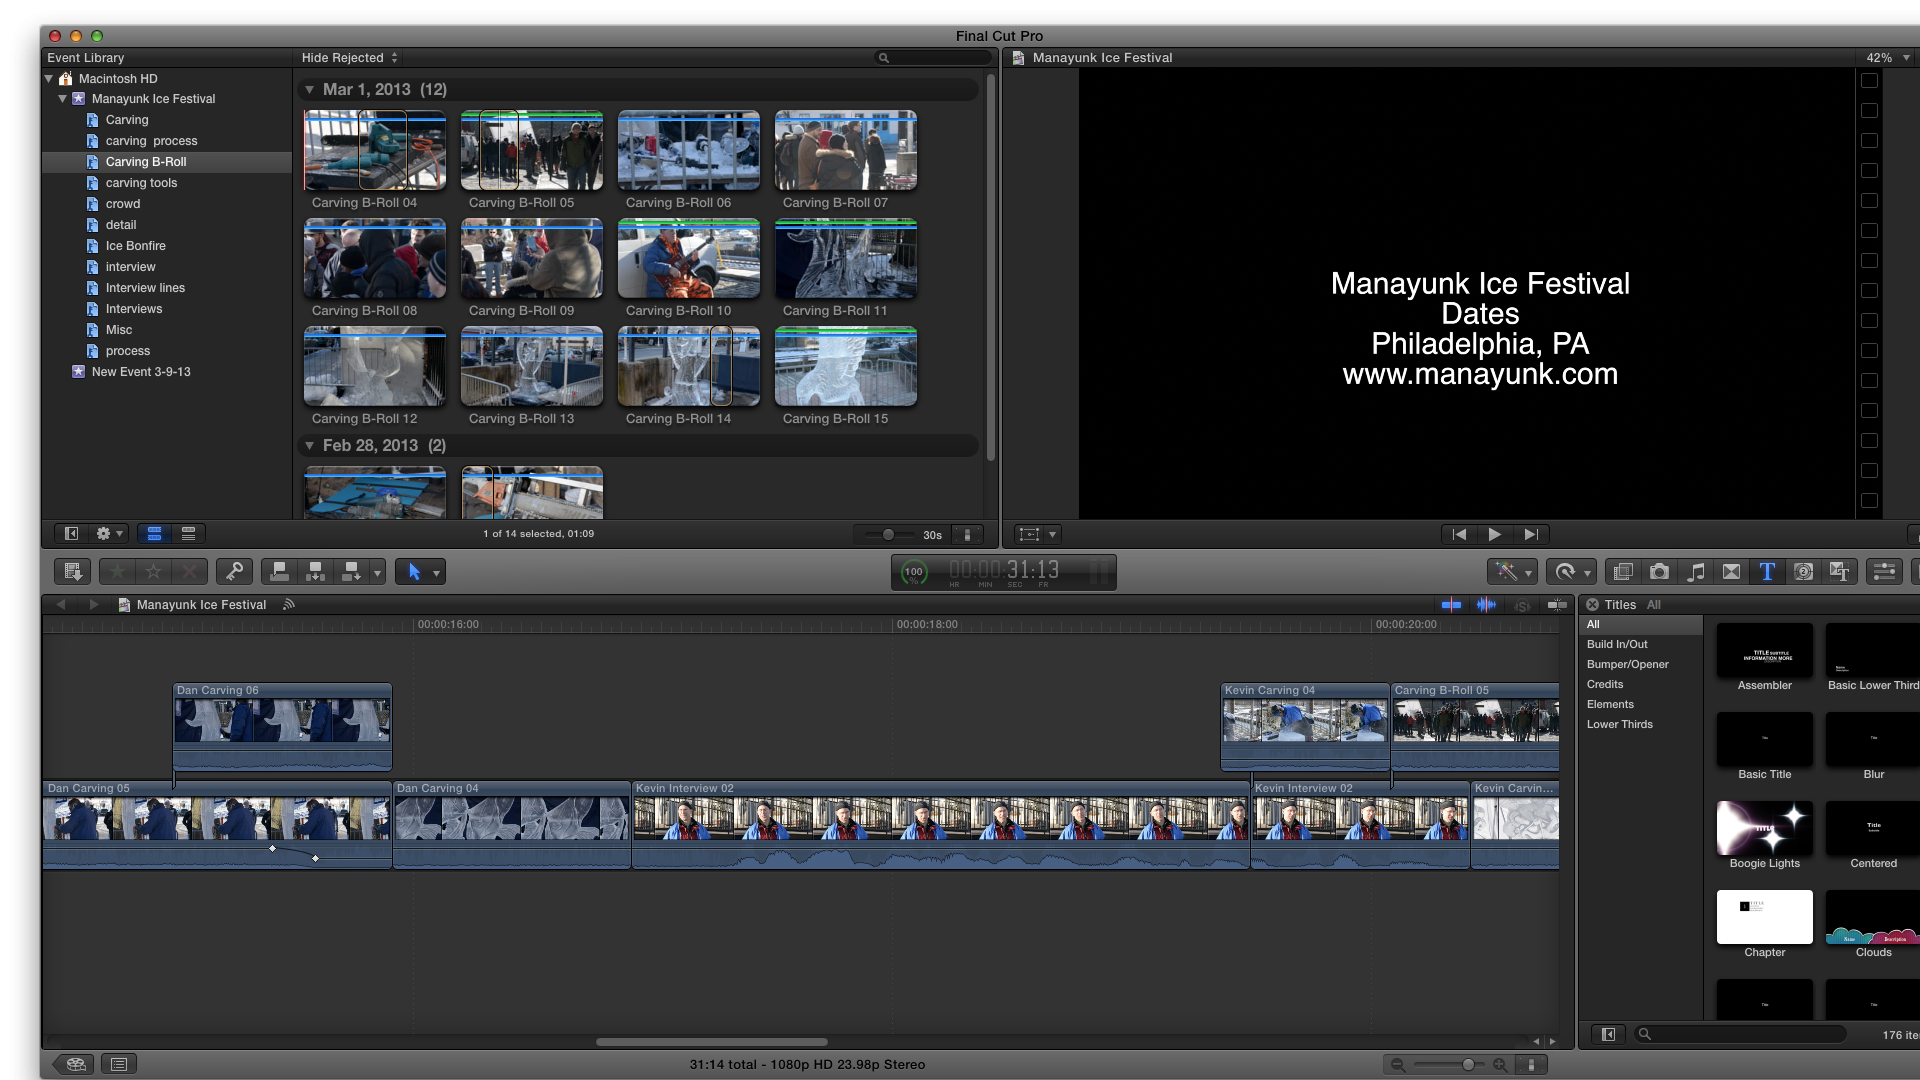 Second cut of Manayunk Ice Festival cut - MILESTONE - image 1 - student project